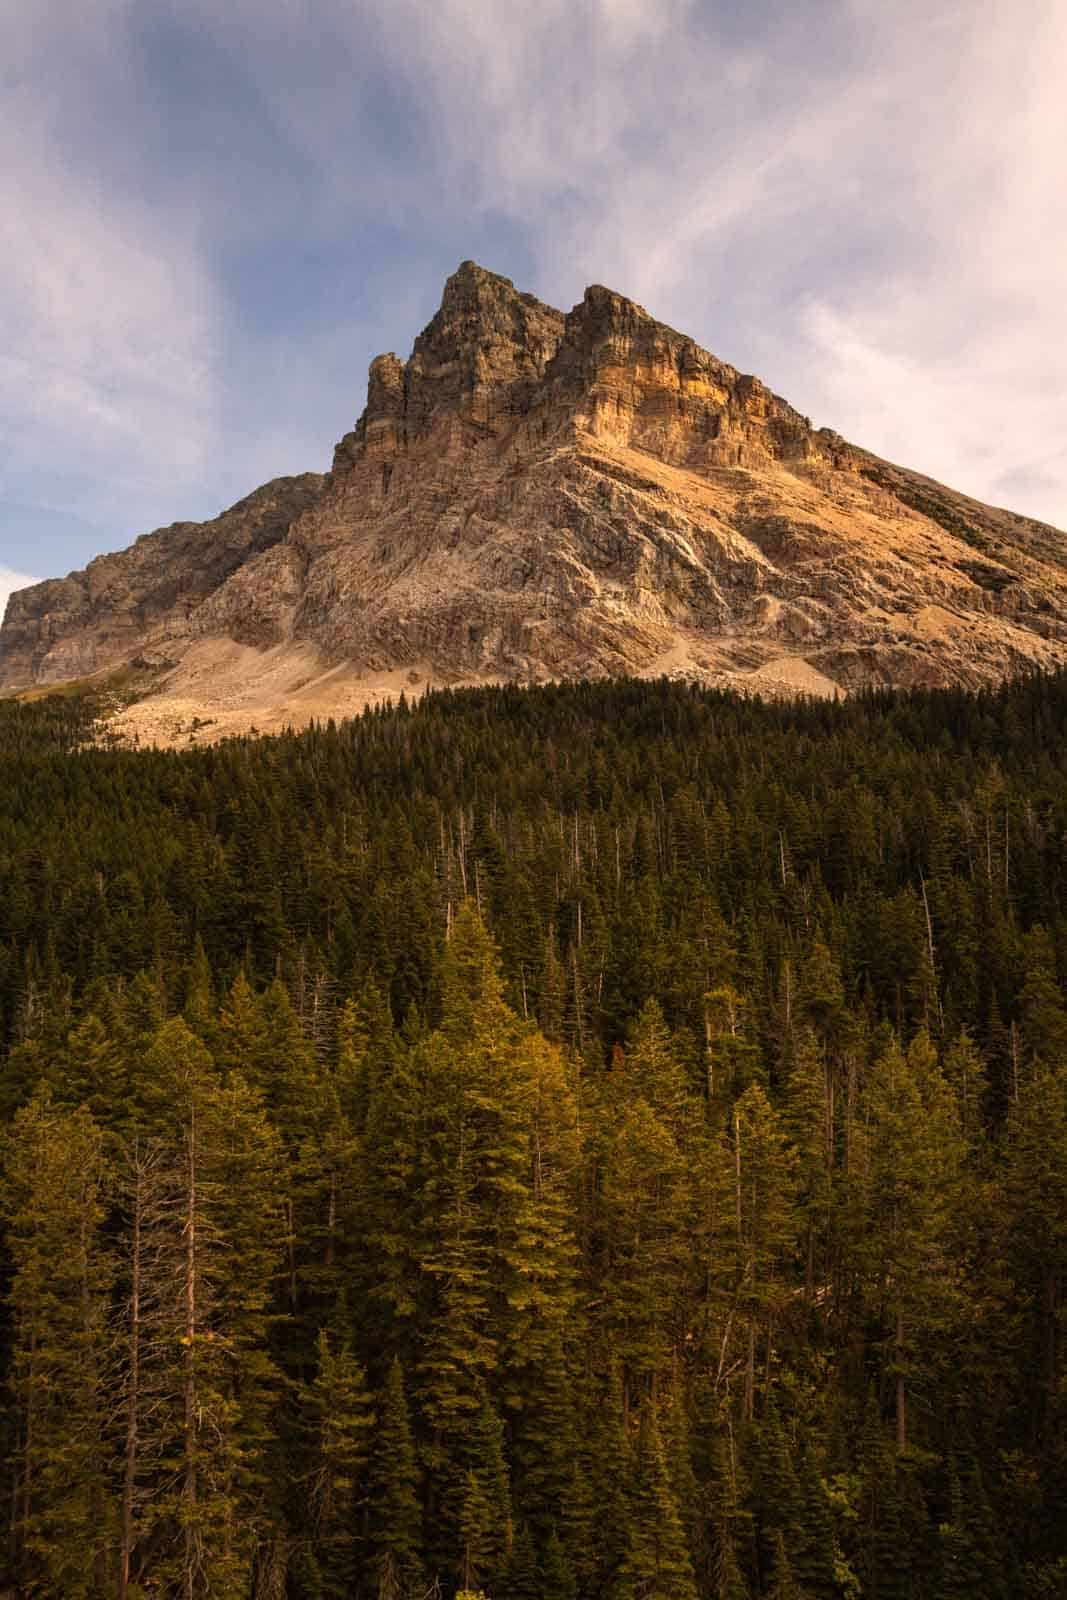 The breathtaking mountain area of Cracker Lake located near a trail in Glacier National Park